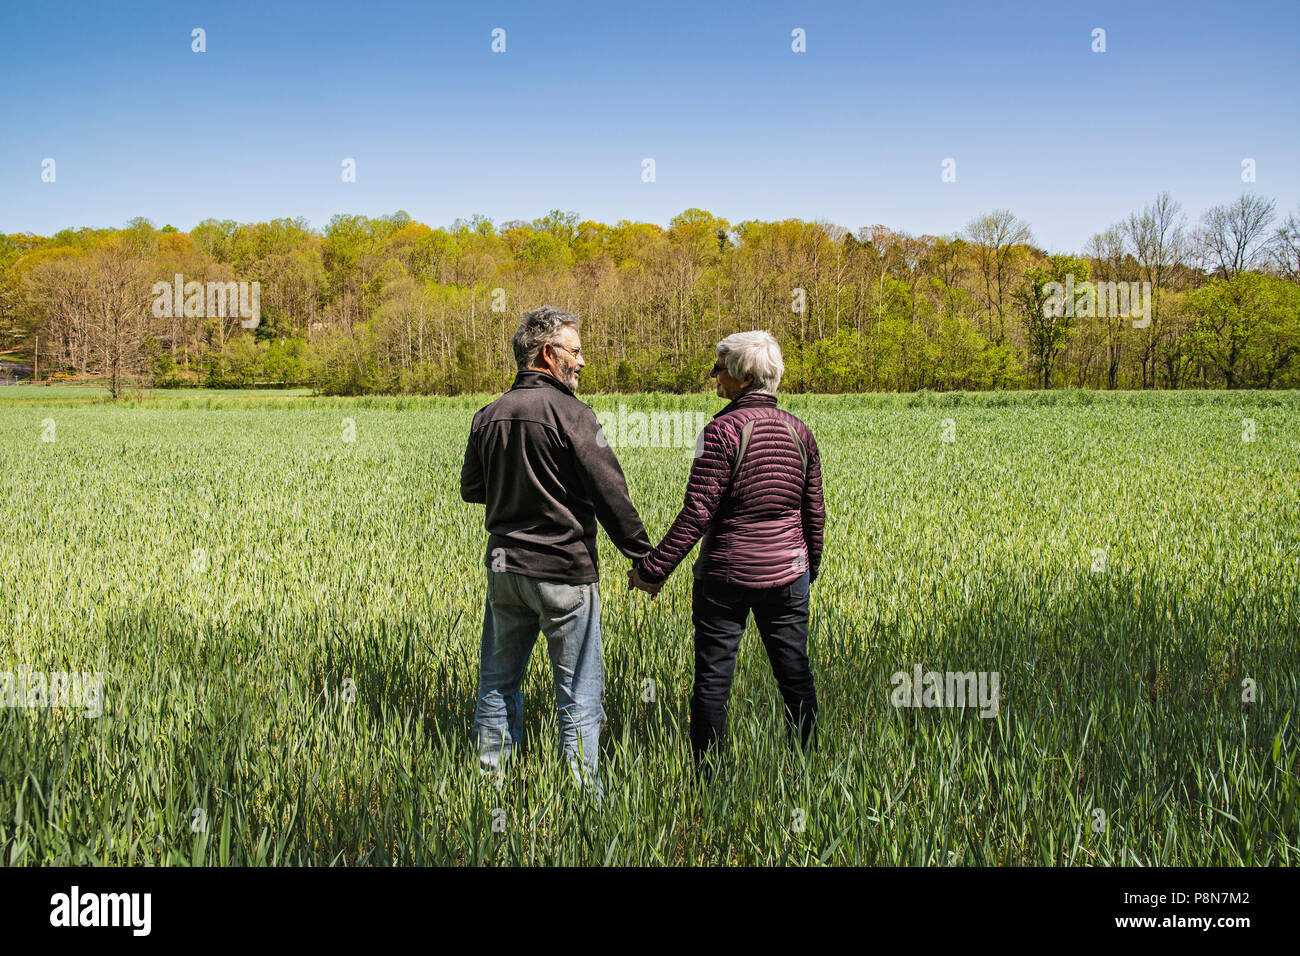 MATURE COUPLE HOLDING HANDS IN FIELD, WINSTON - SALEM, NC, USA Stock Photo